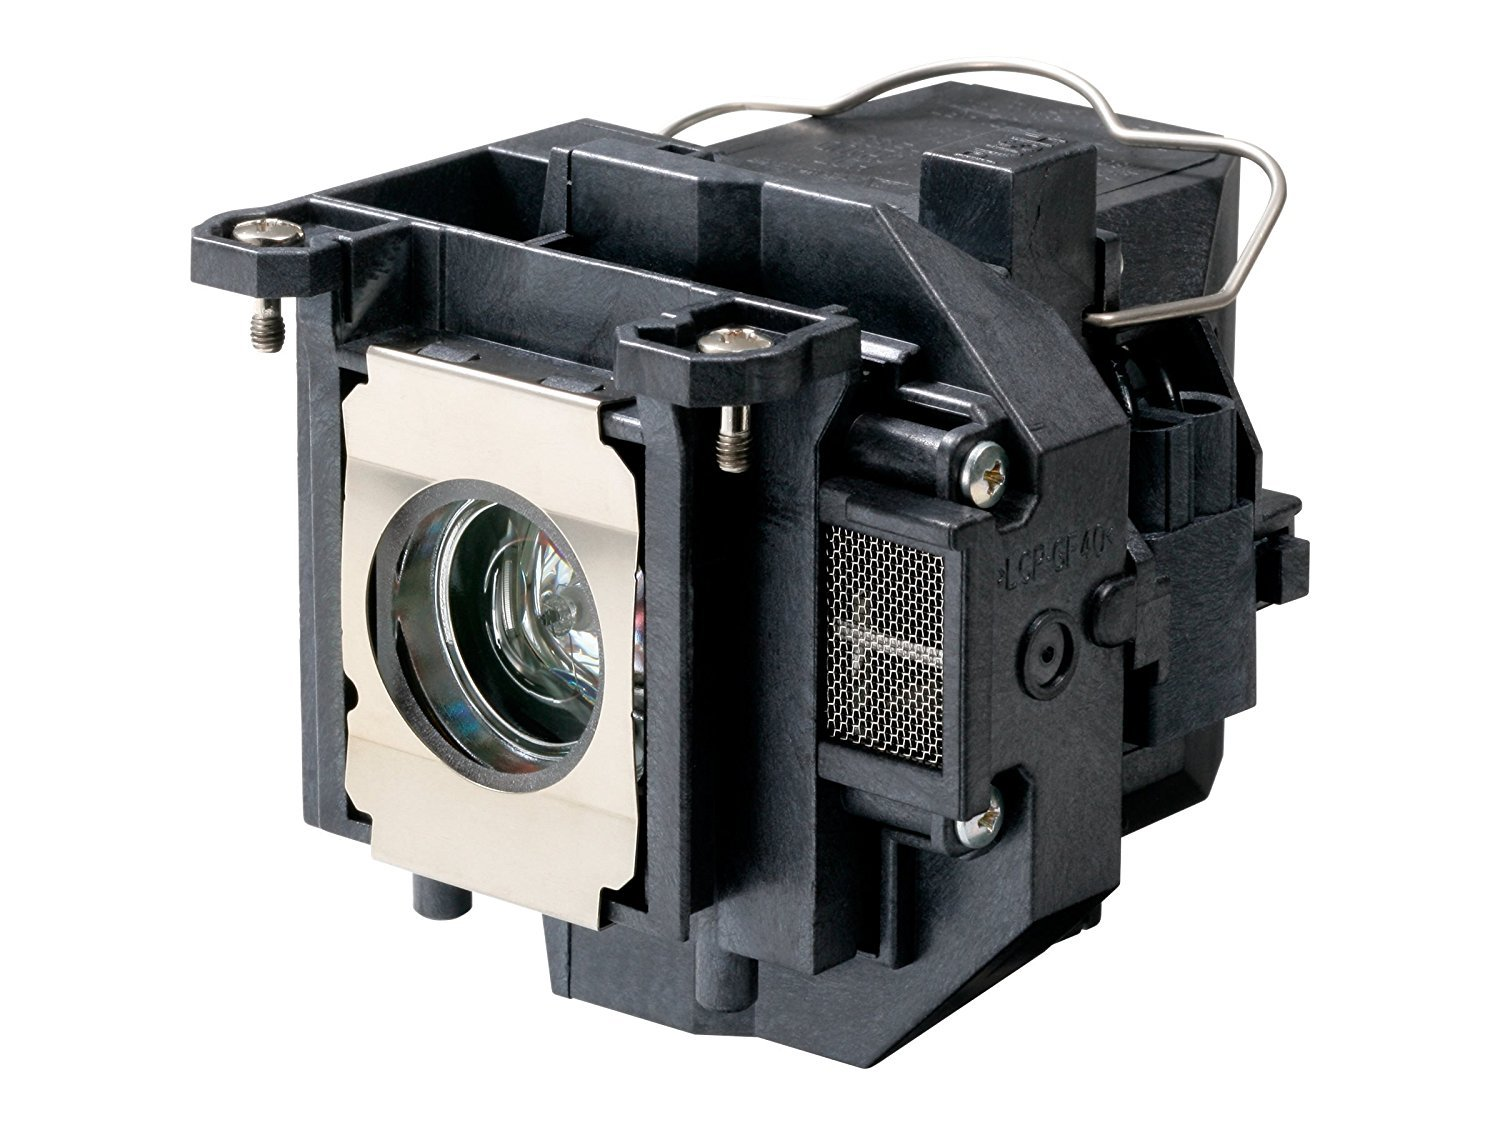 V13H010L57 Replacement Lamp Compatible for Projector EPSON BrightLink 450Wi 455Wi EPSON PowerLite 450W//460 EPSON EB-440W EB-450W EB-450Wi EB-455Wi EB-460 EB-460i EB-465i BORYLI ELPLP57